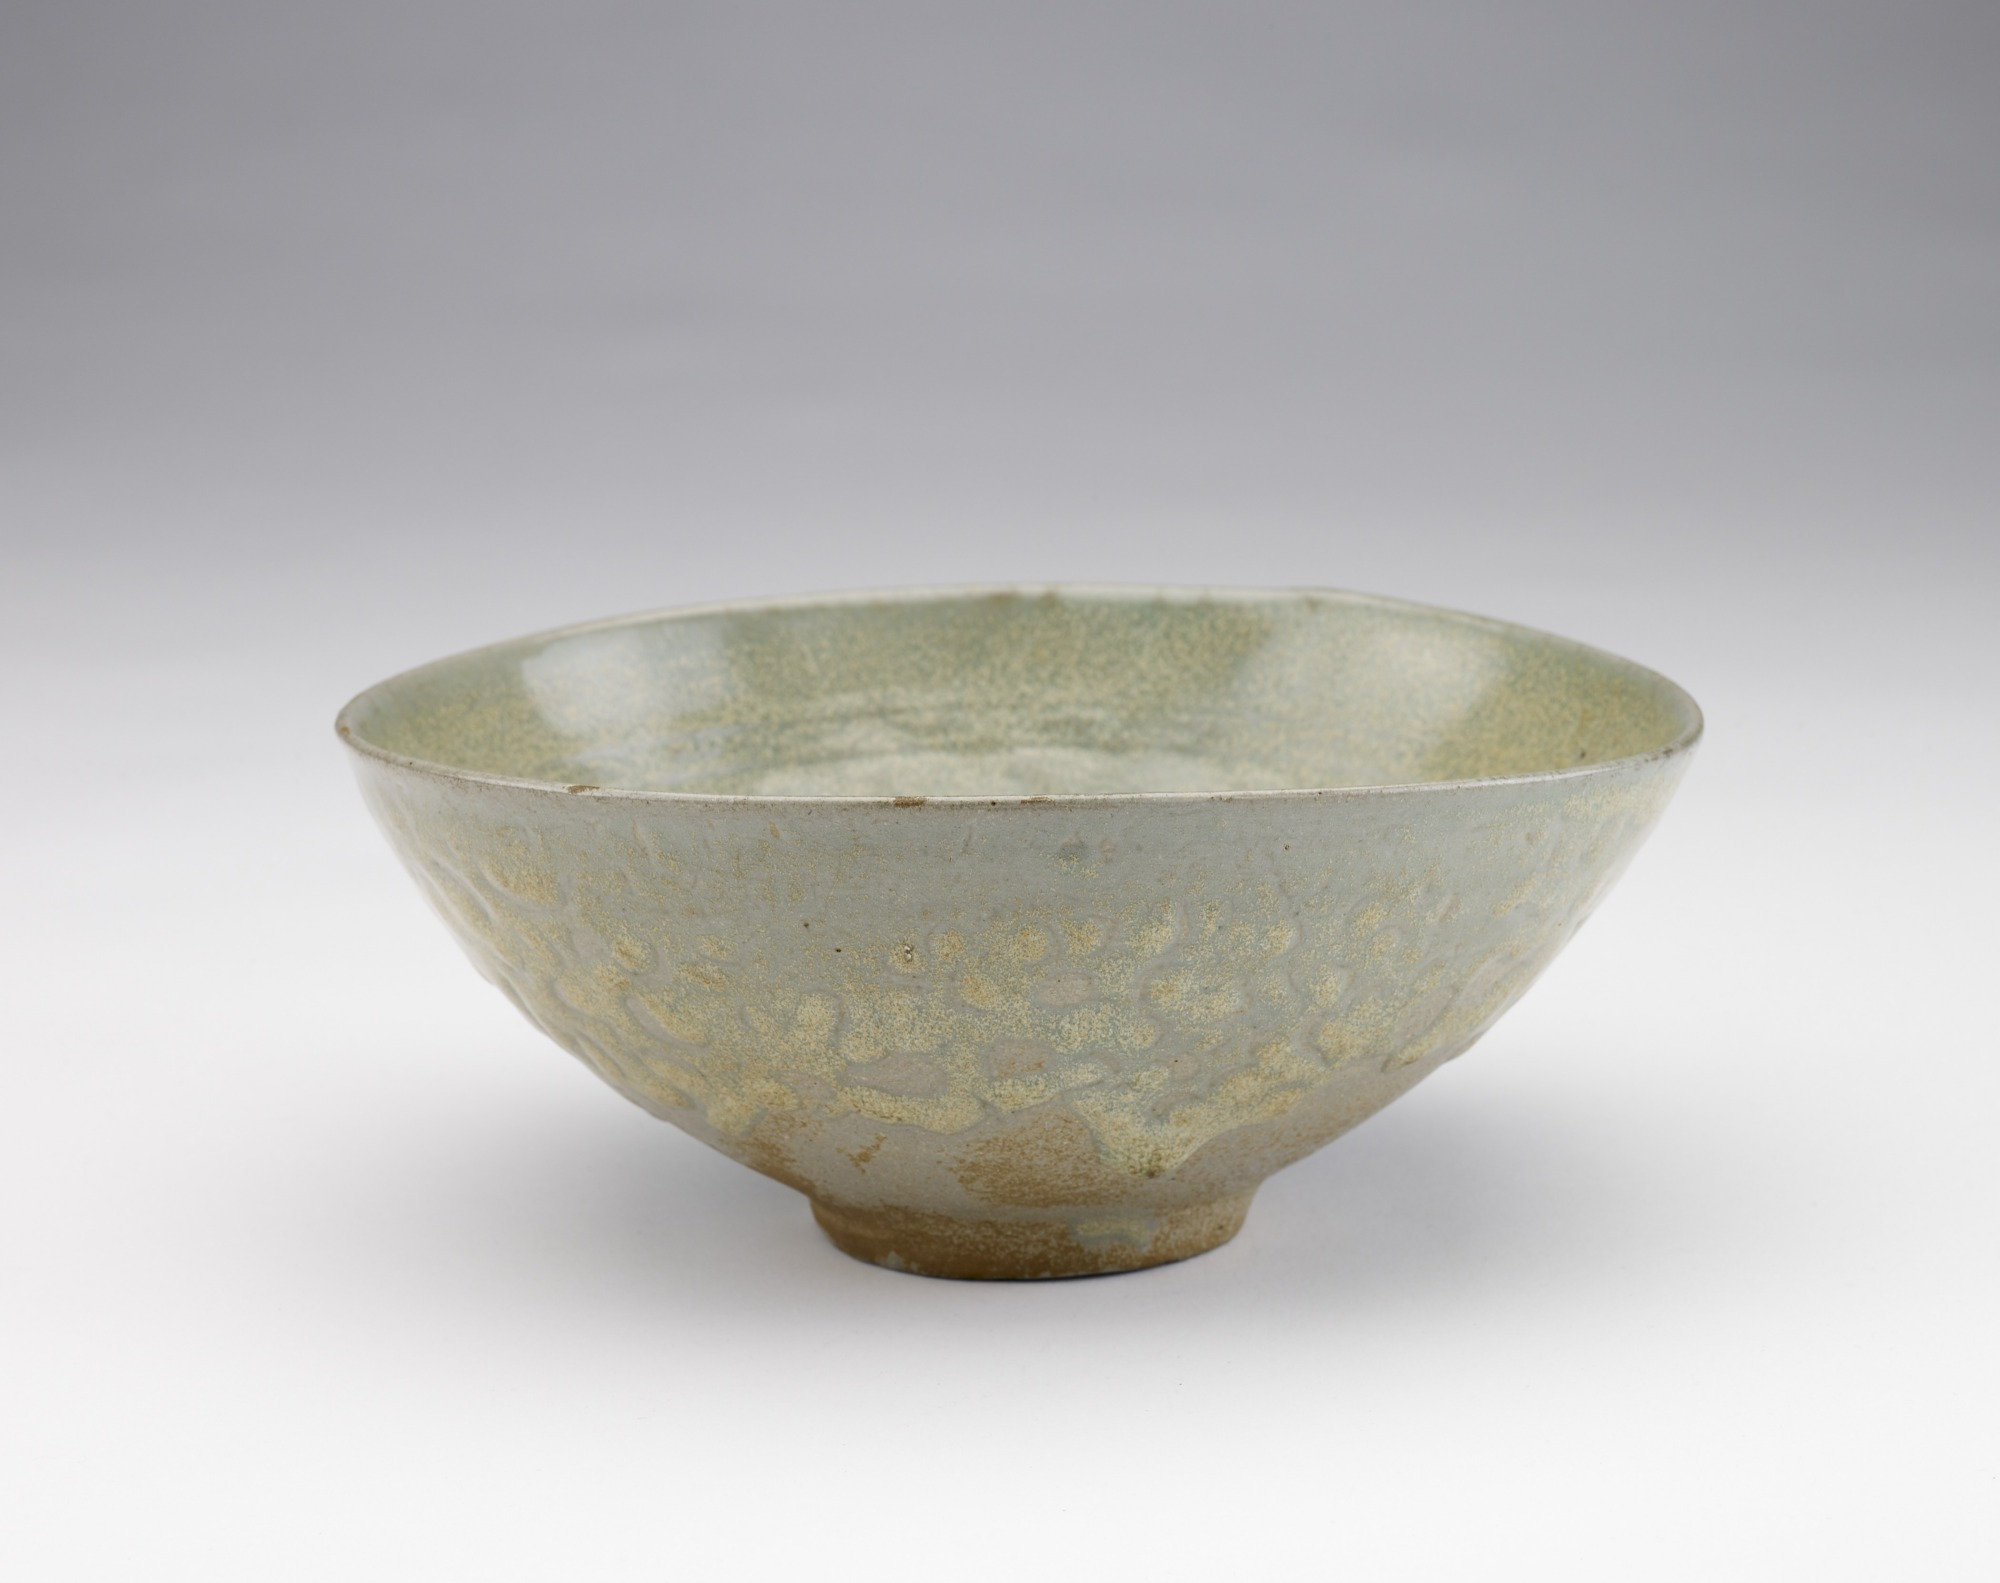 Bowl with molded peony and vinescroll decor, profile